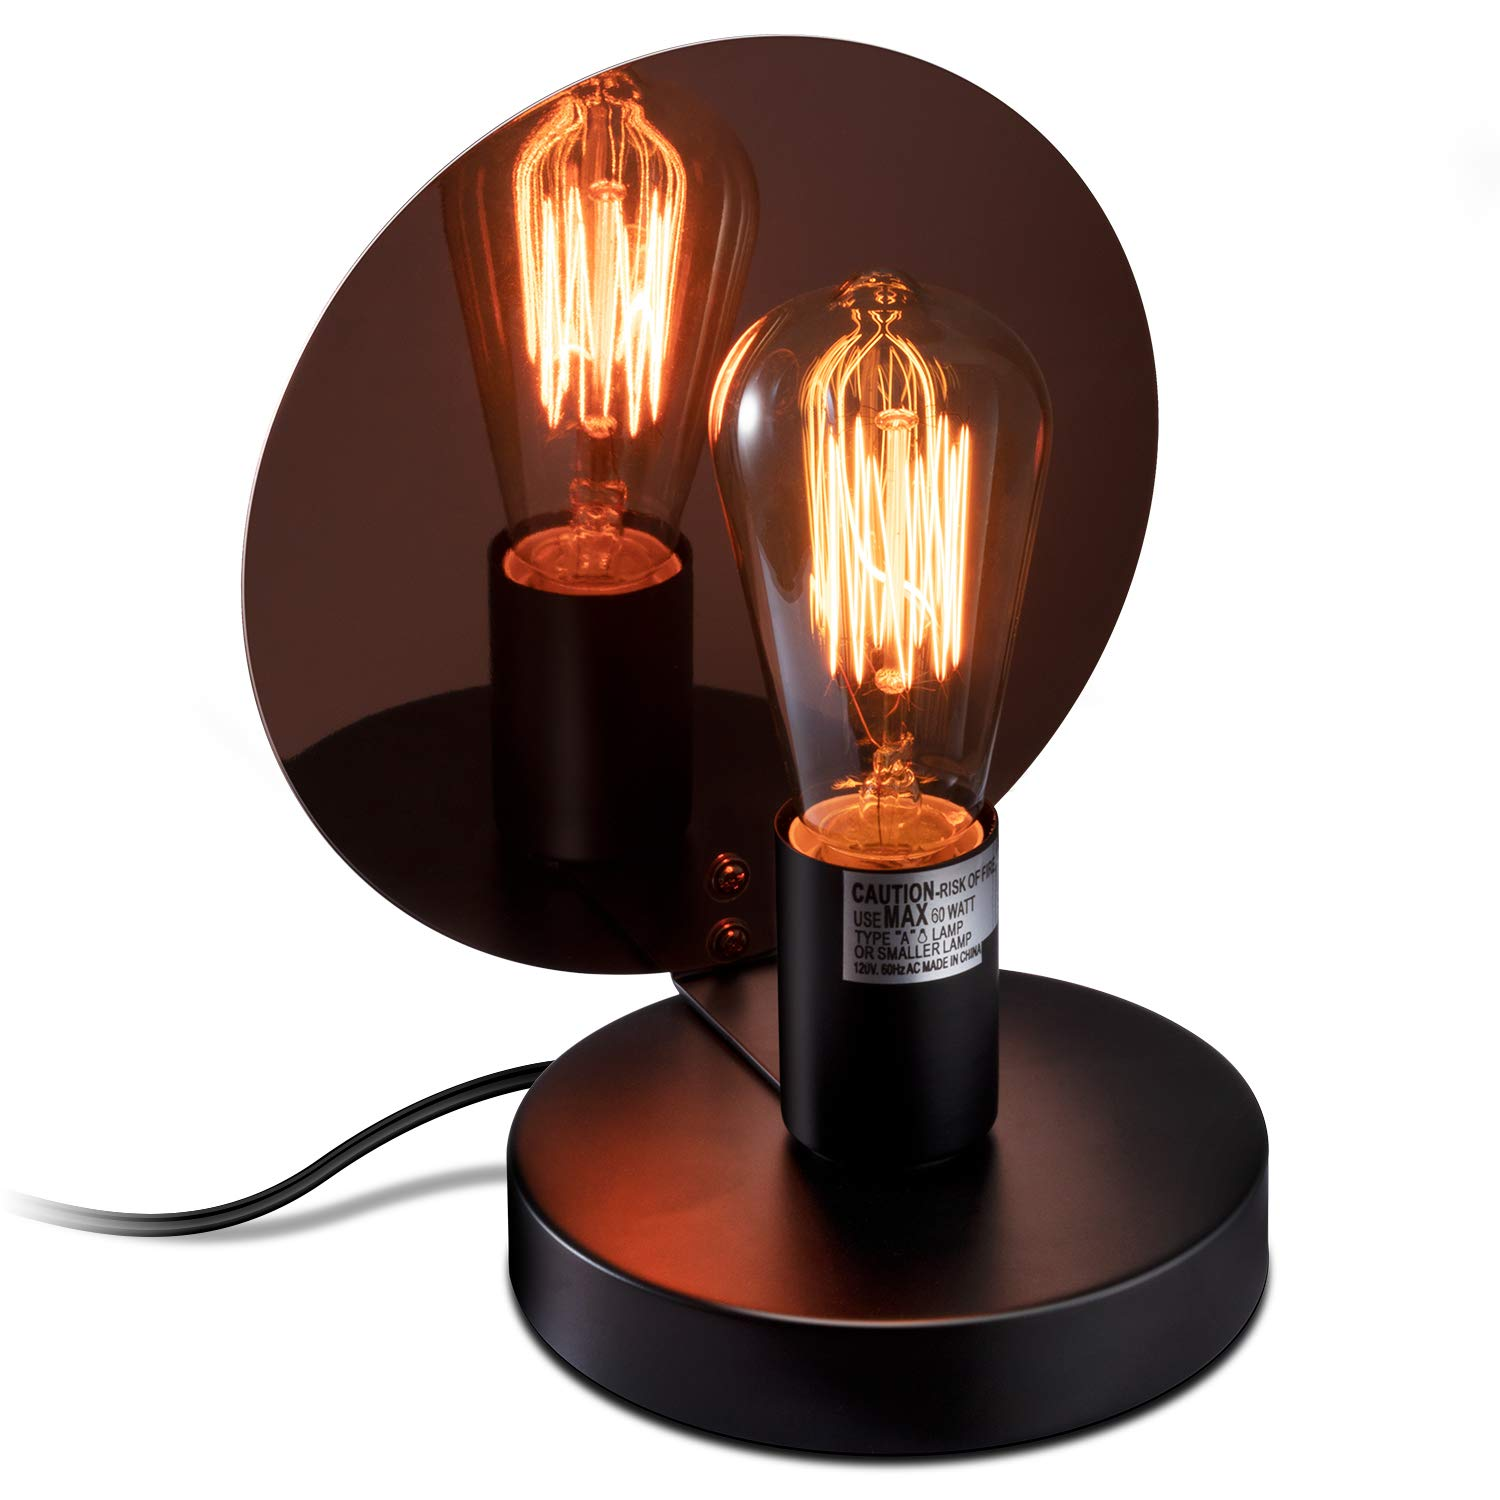 Black Sheoolor Retro Style Bedside Lamp Minimalist Design Dimmable Nightstand Lamp with Metal Base for Living Room Bedroom Cafe Home Decoration Touch Control Table Lamp